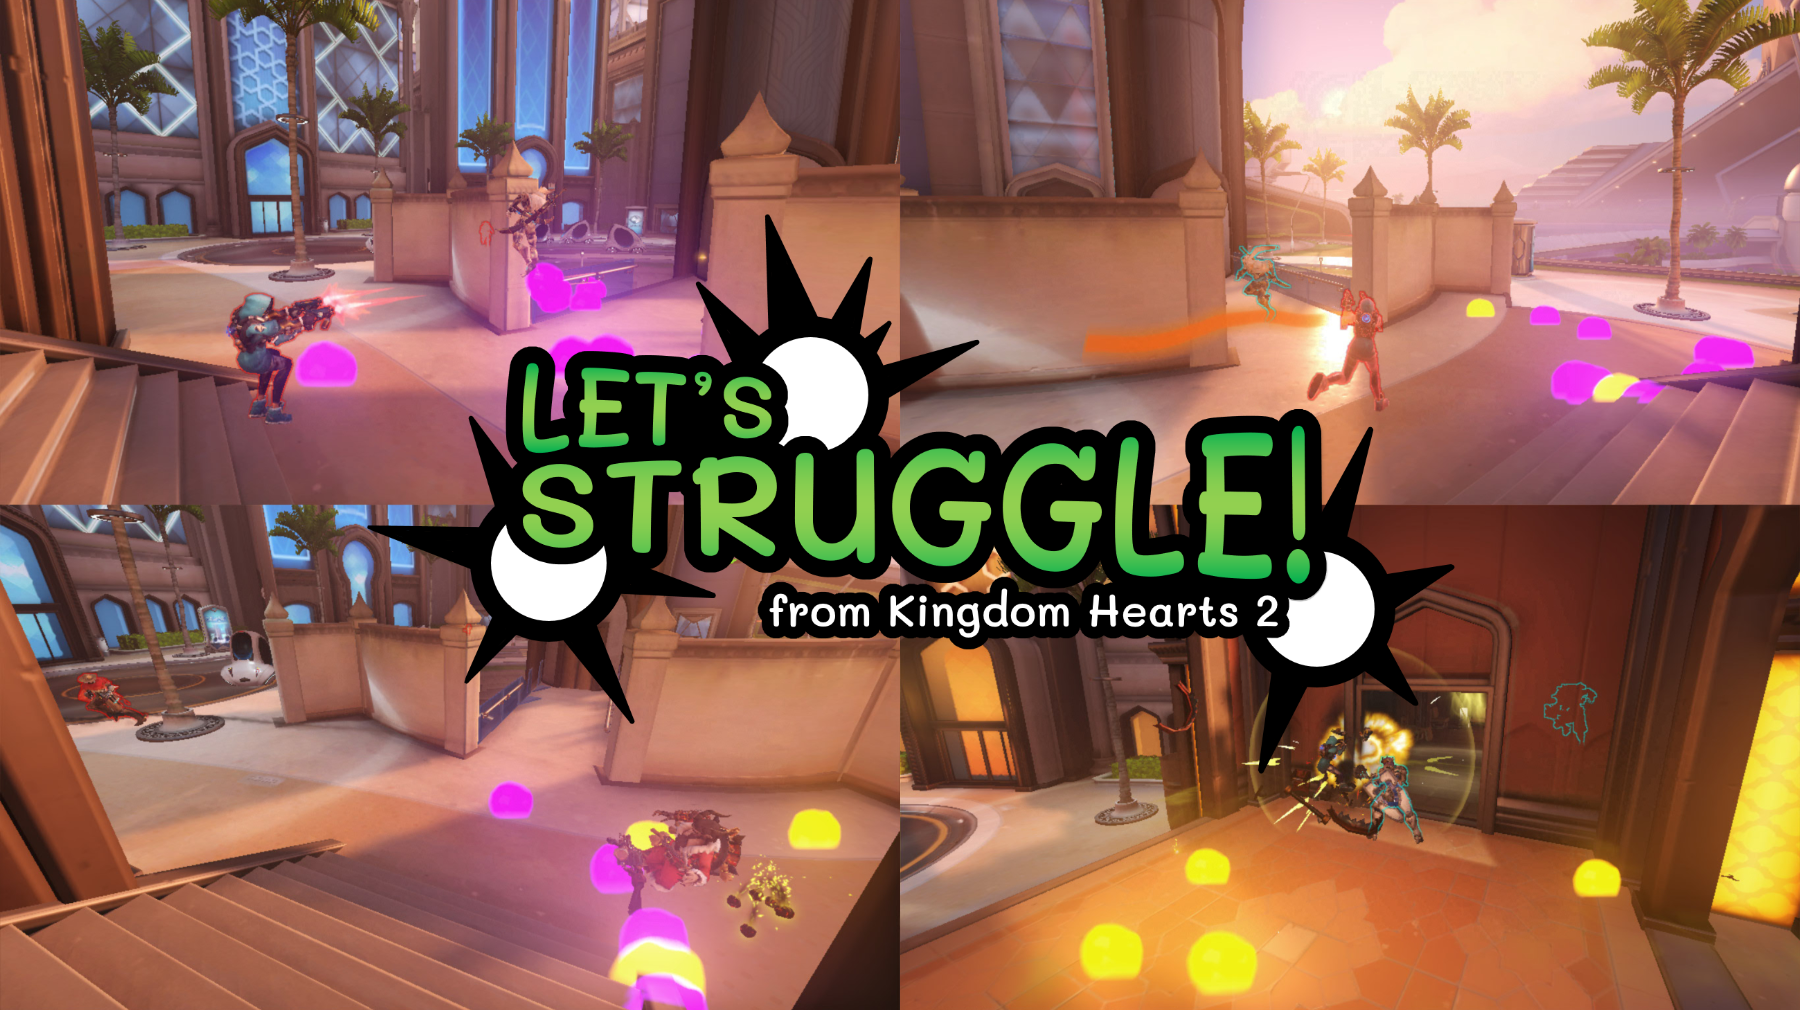 Thumbnail for Let's Struggle! - from Kingdom Hearts 2